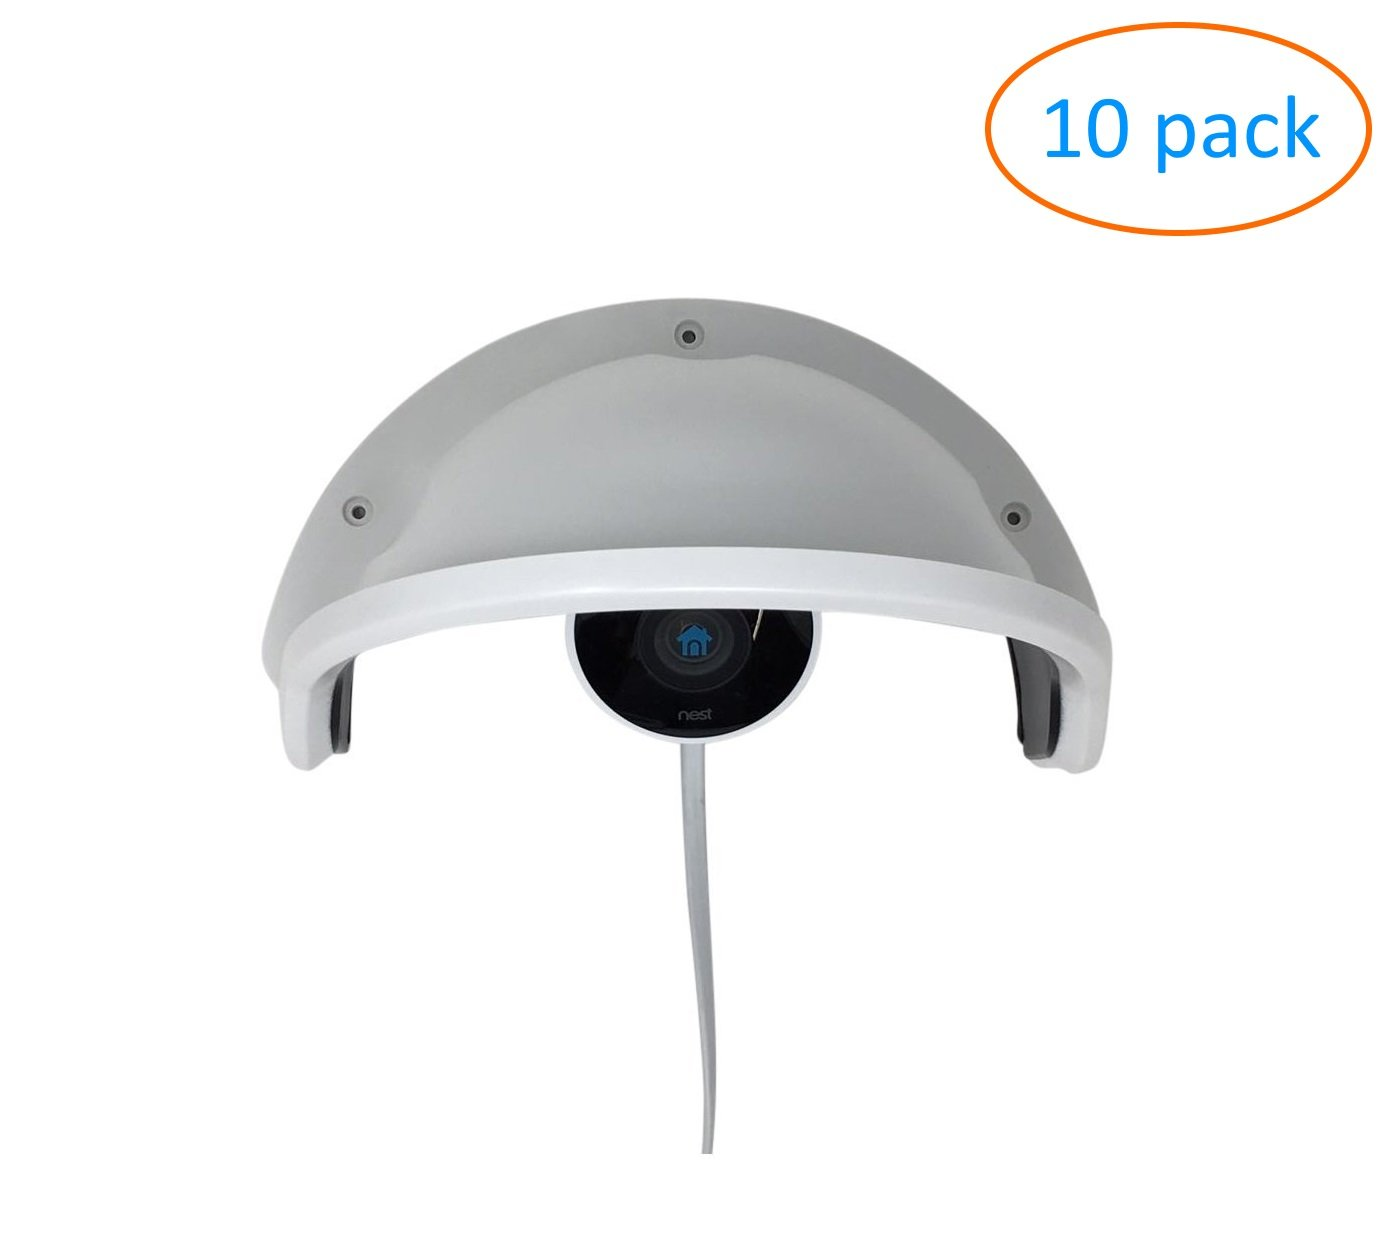 Kenuco Universal Rain Shade Sun Shield for Outdoor Nest Cam - 10 Pack